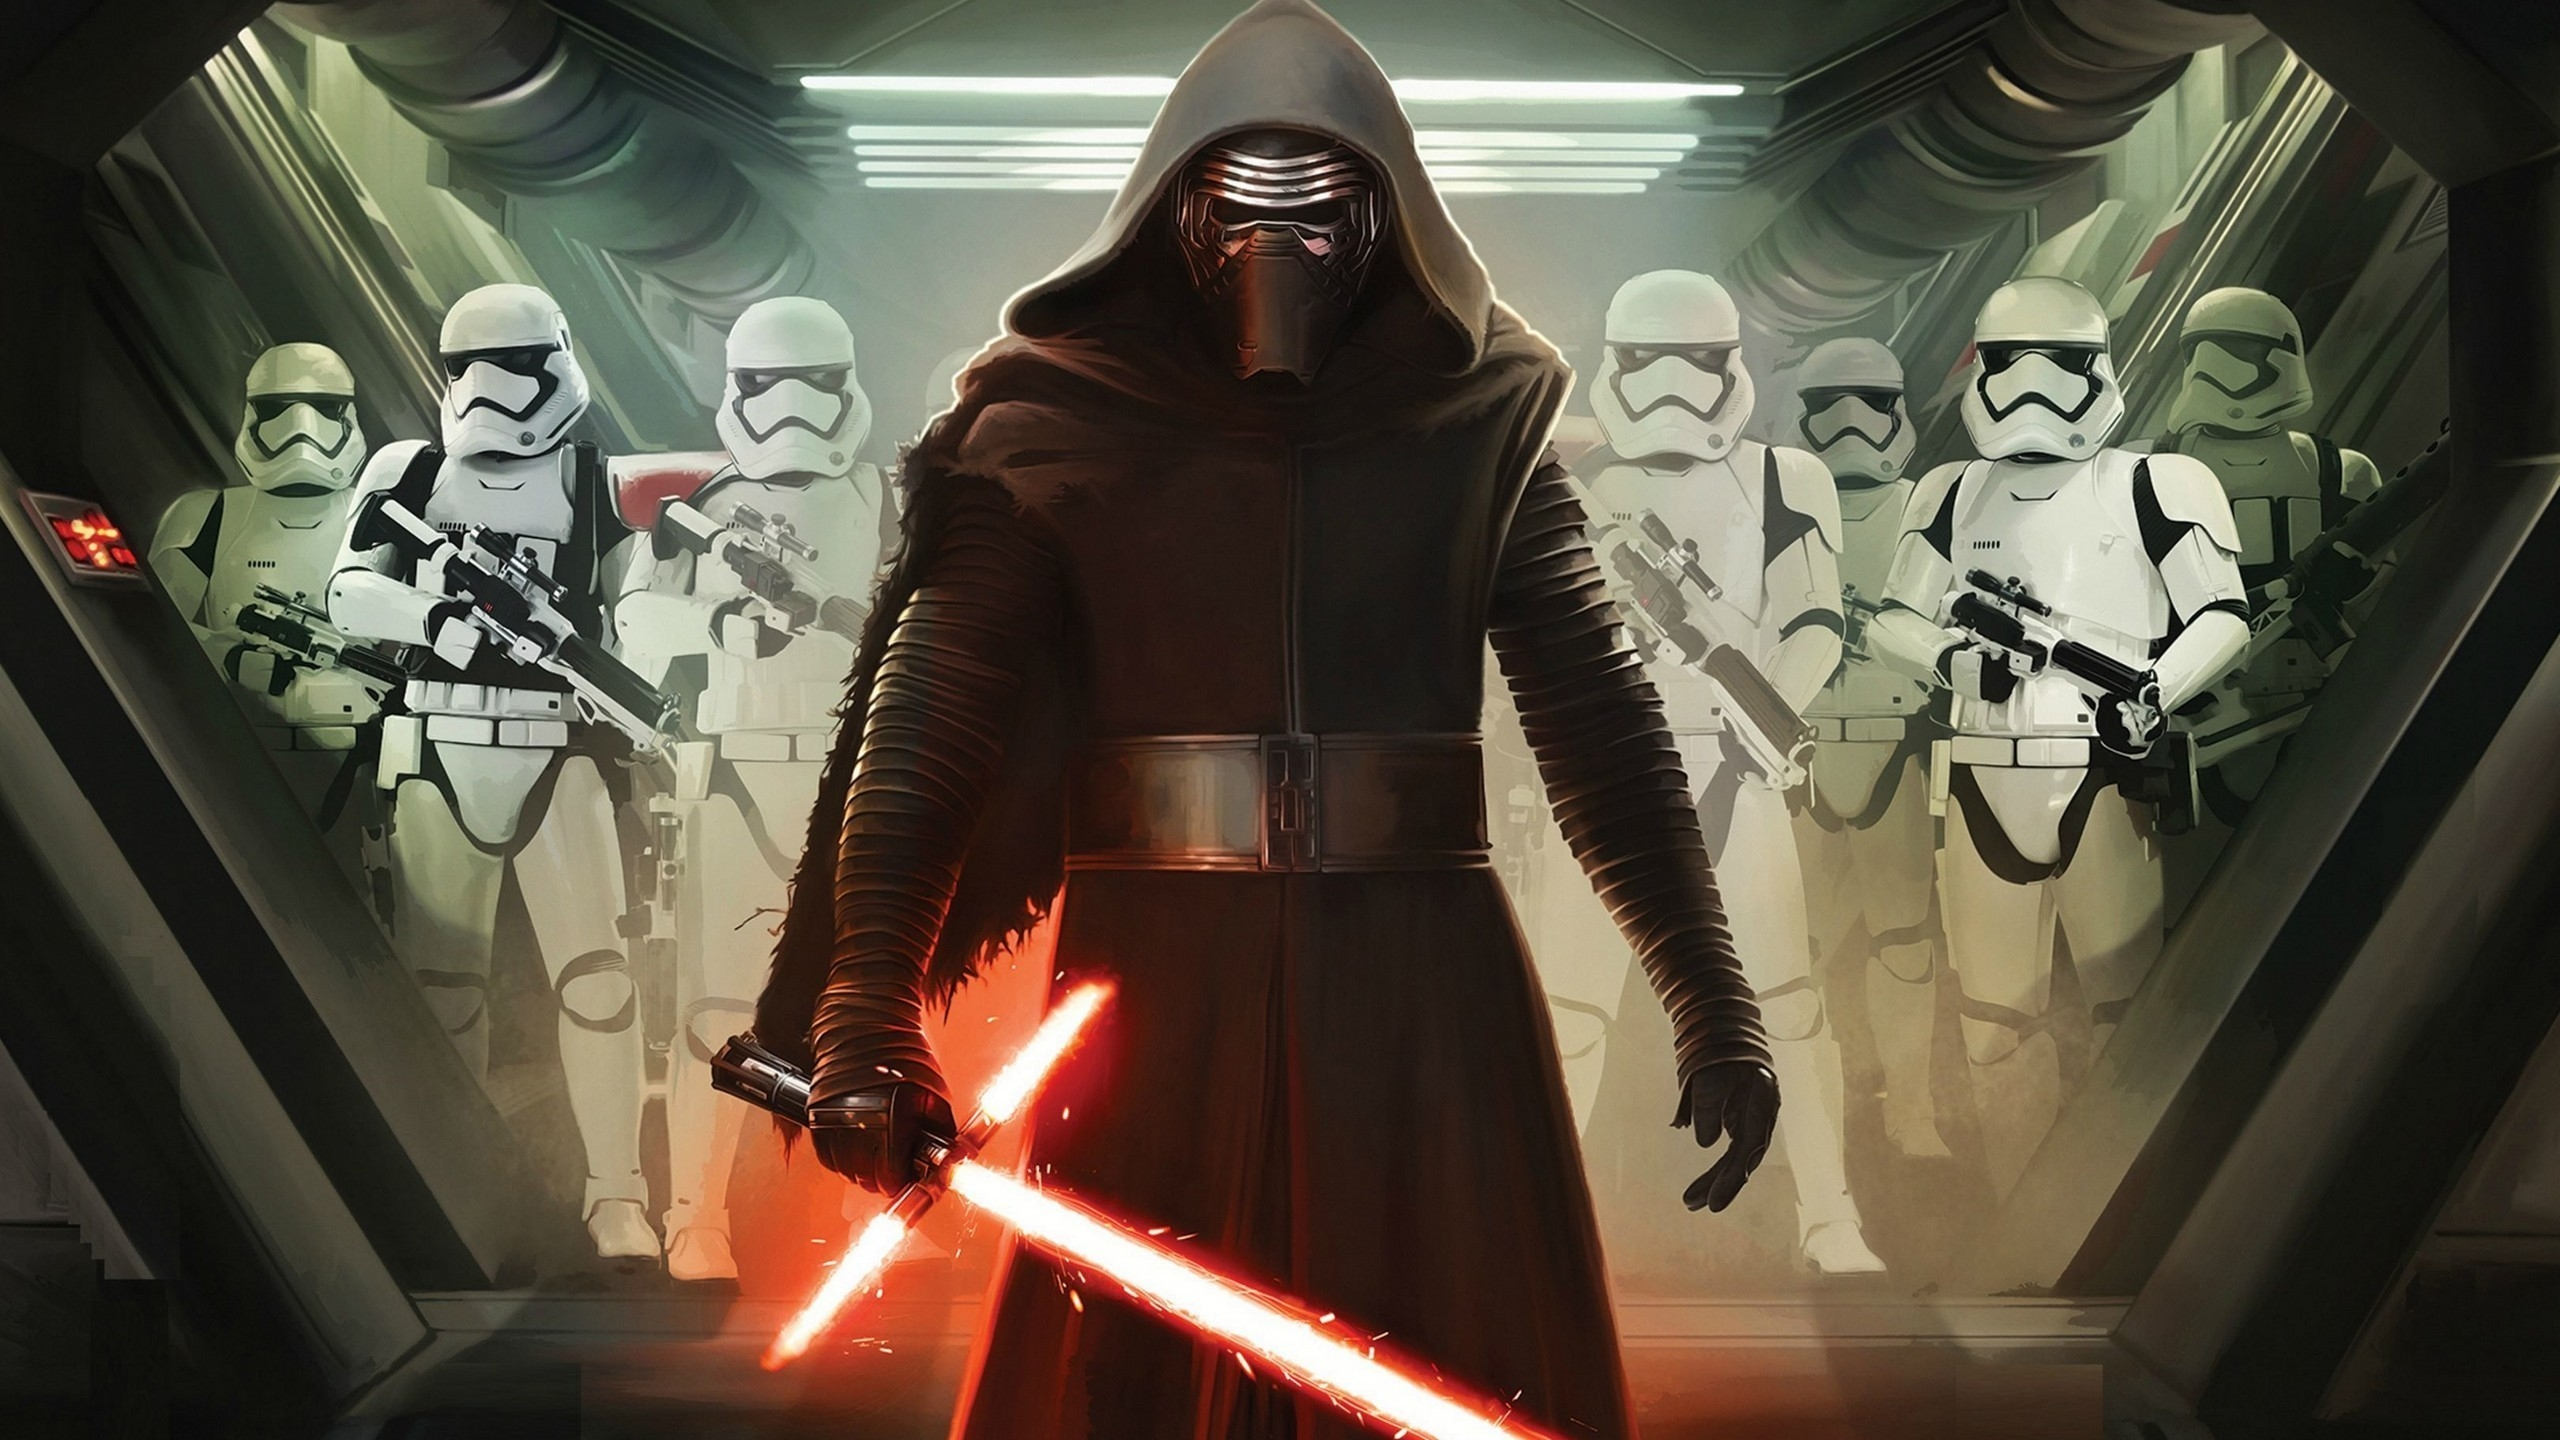 Star Wars VII Darth Vader and Storm Troopers for 2560x1440 HDTV resolution